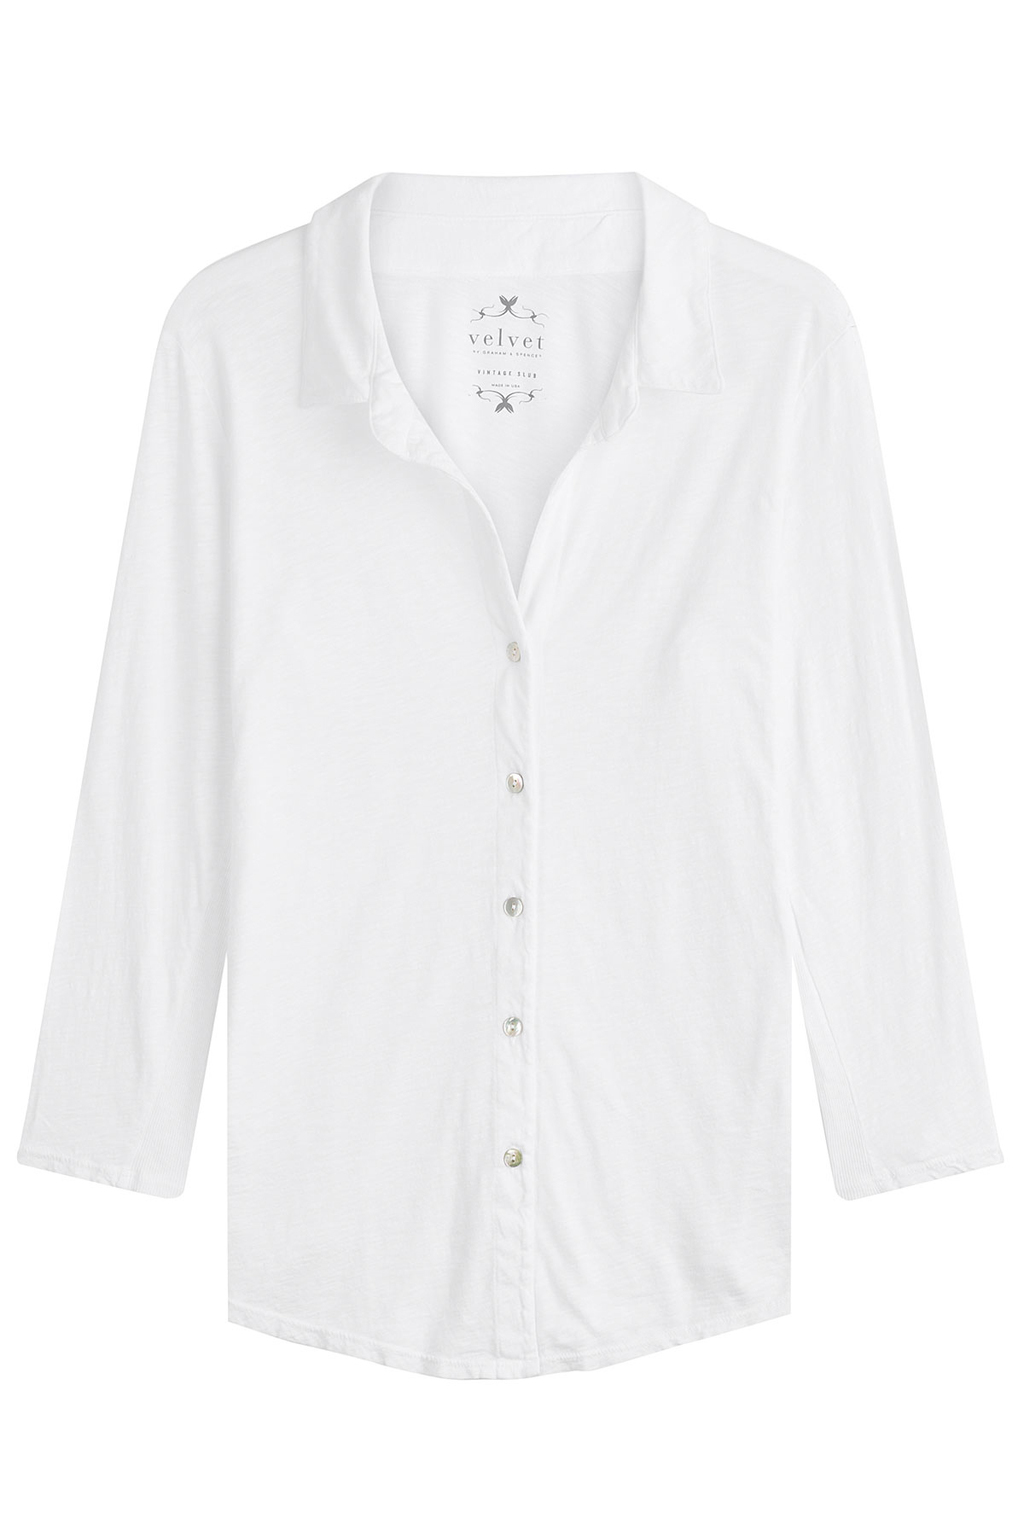 Cotton Shirt White - neckline: shirt collar/peter pan/zip with opening; pattern: plain; style: shirt; predominant colour: white; occasions: casual, work, creative work; length: standard; fibres: cotton - 100%; fit: body skimming; sleeve length: long sleeve; sleeve style: standard; texture group: cotton feel fabrics; pattern type: fabric; season: s/s 2016